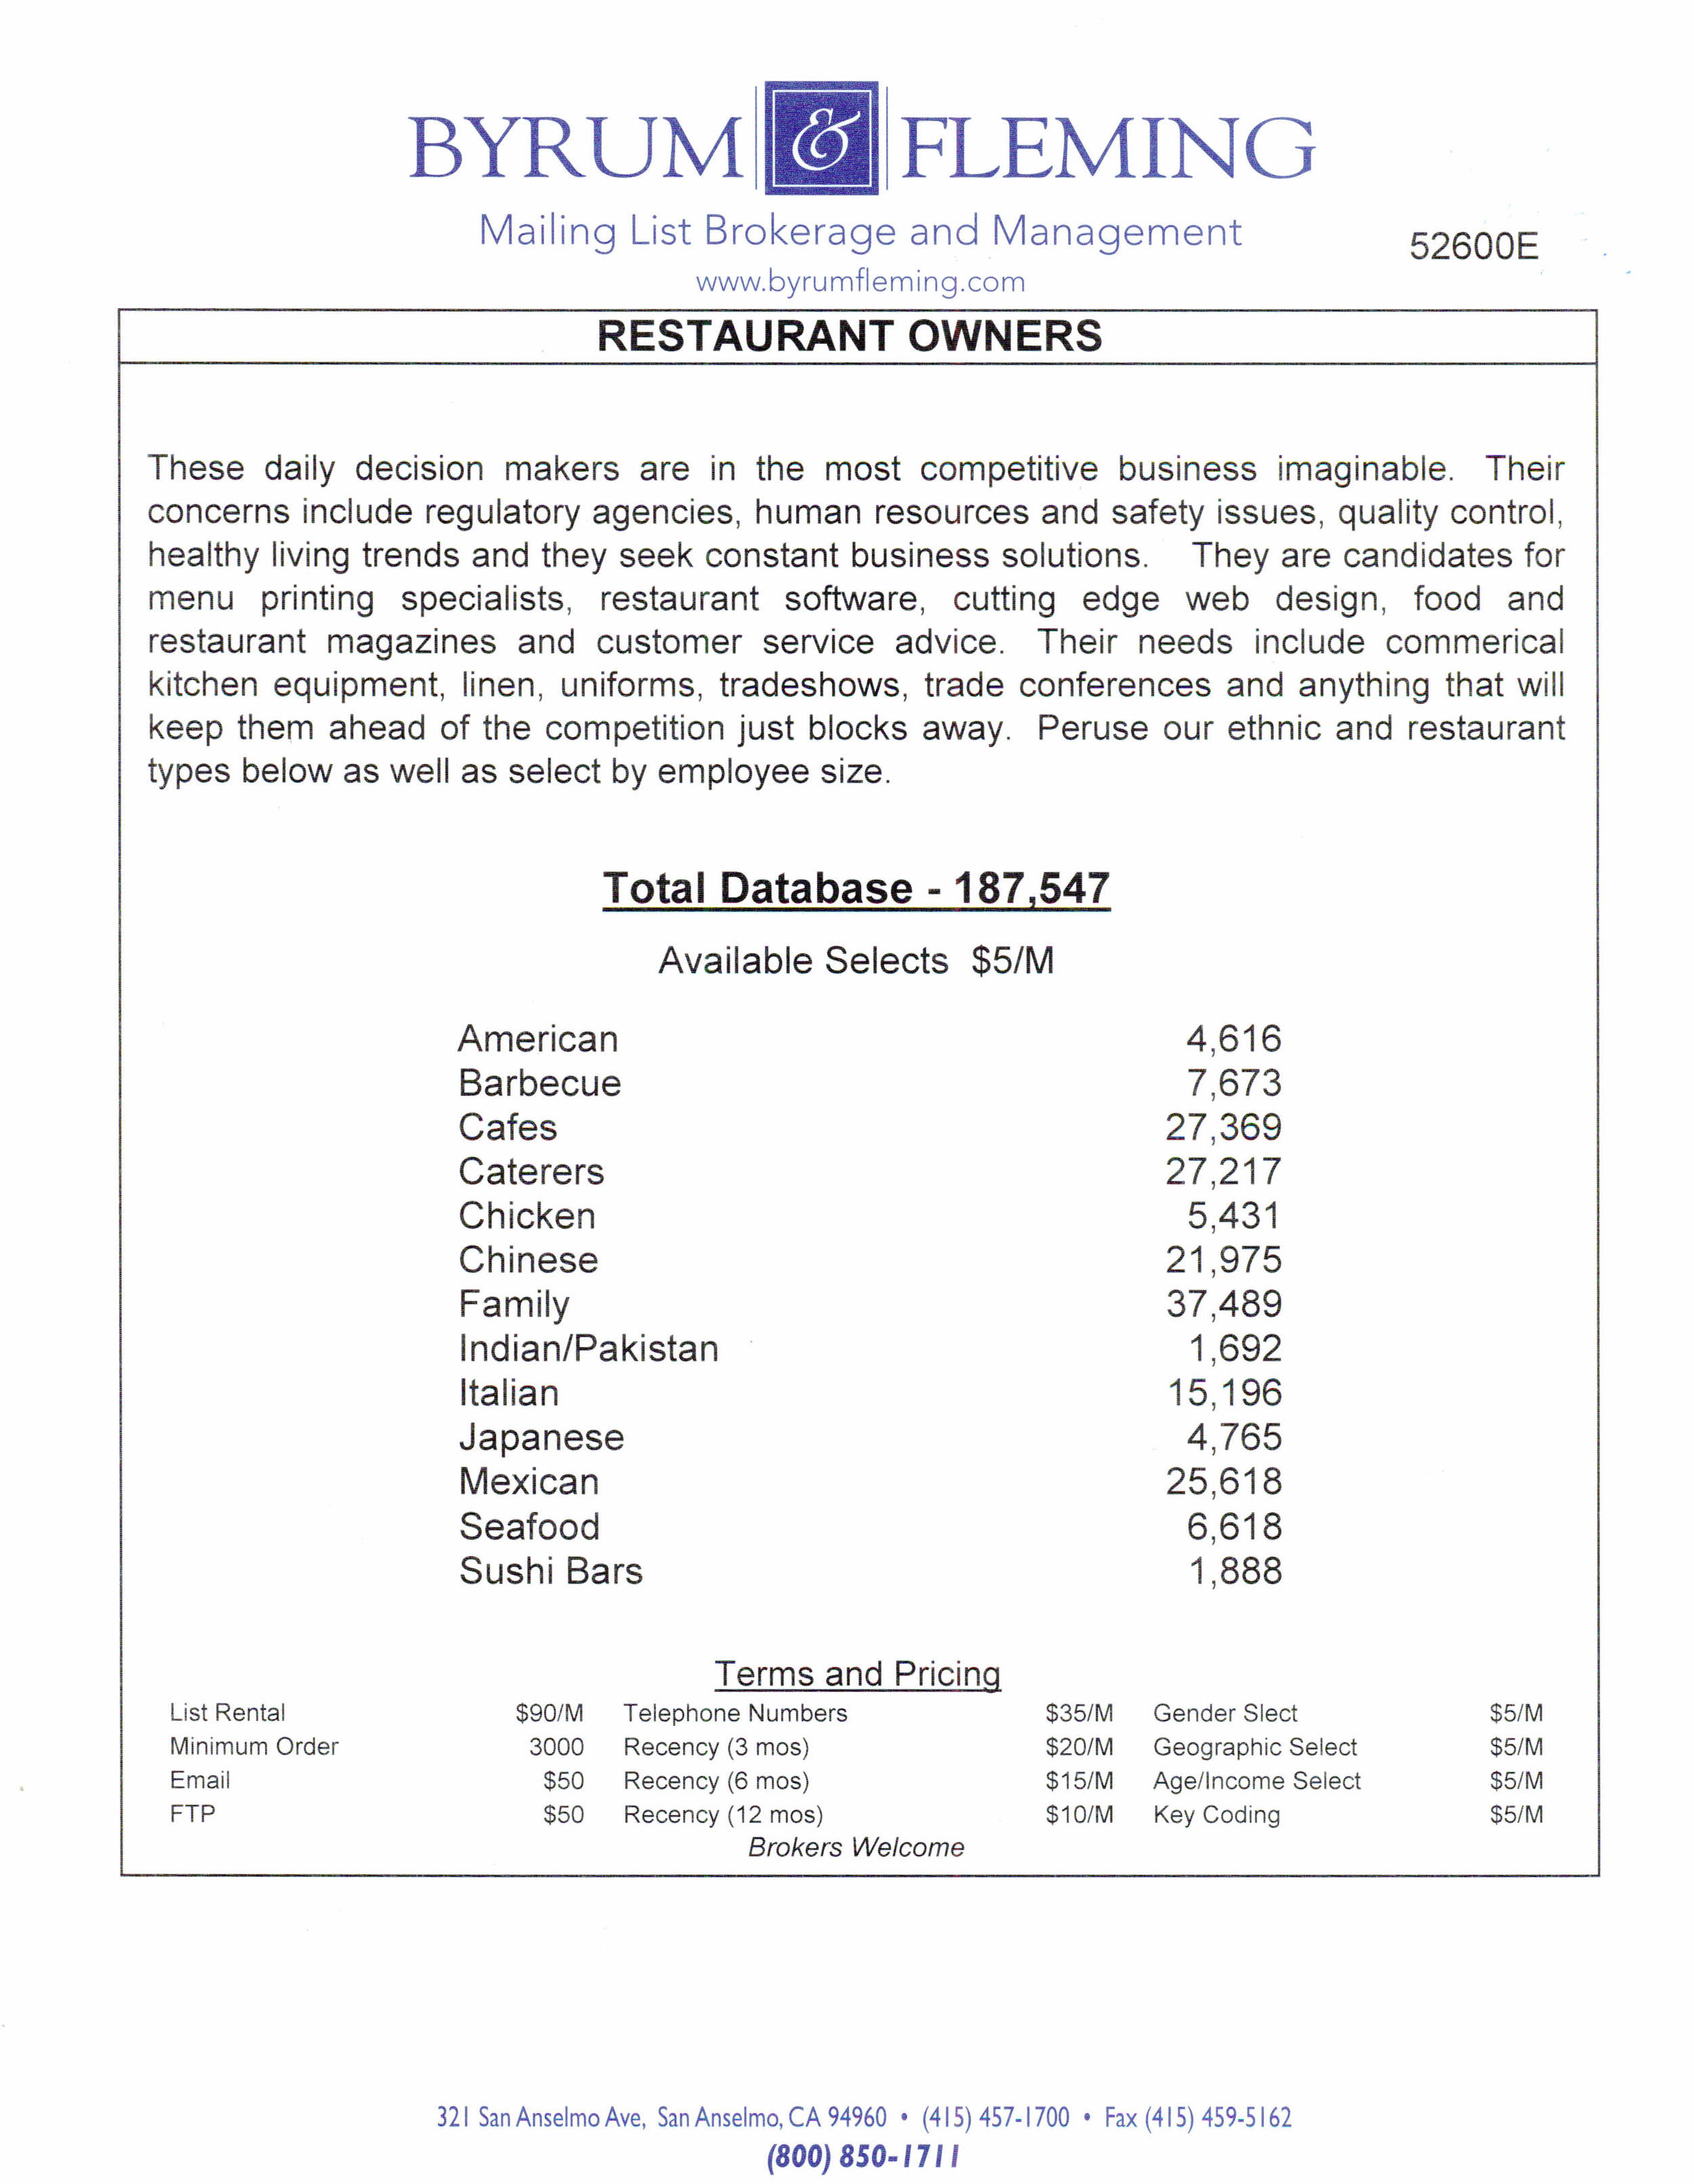 American Barbecue Cafes Caterers Chicken Chinese Family Indian/Pakistan Italian Japanese Mexican Seafood Sushi Bars